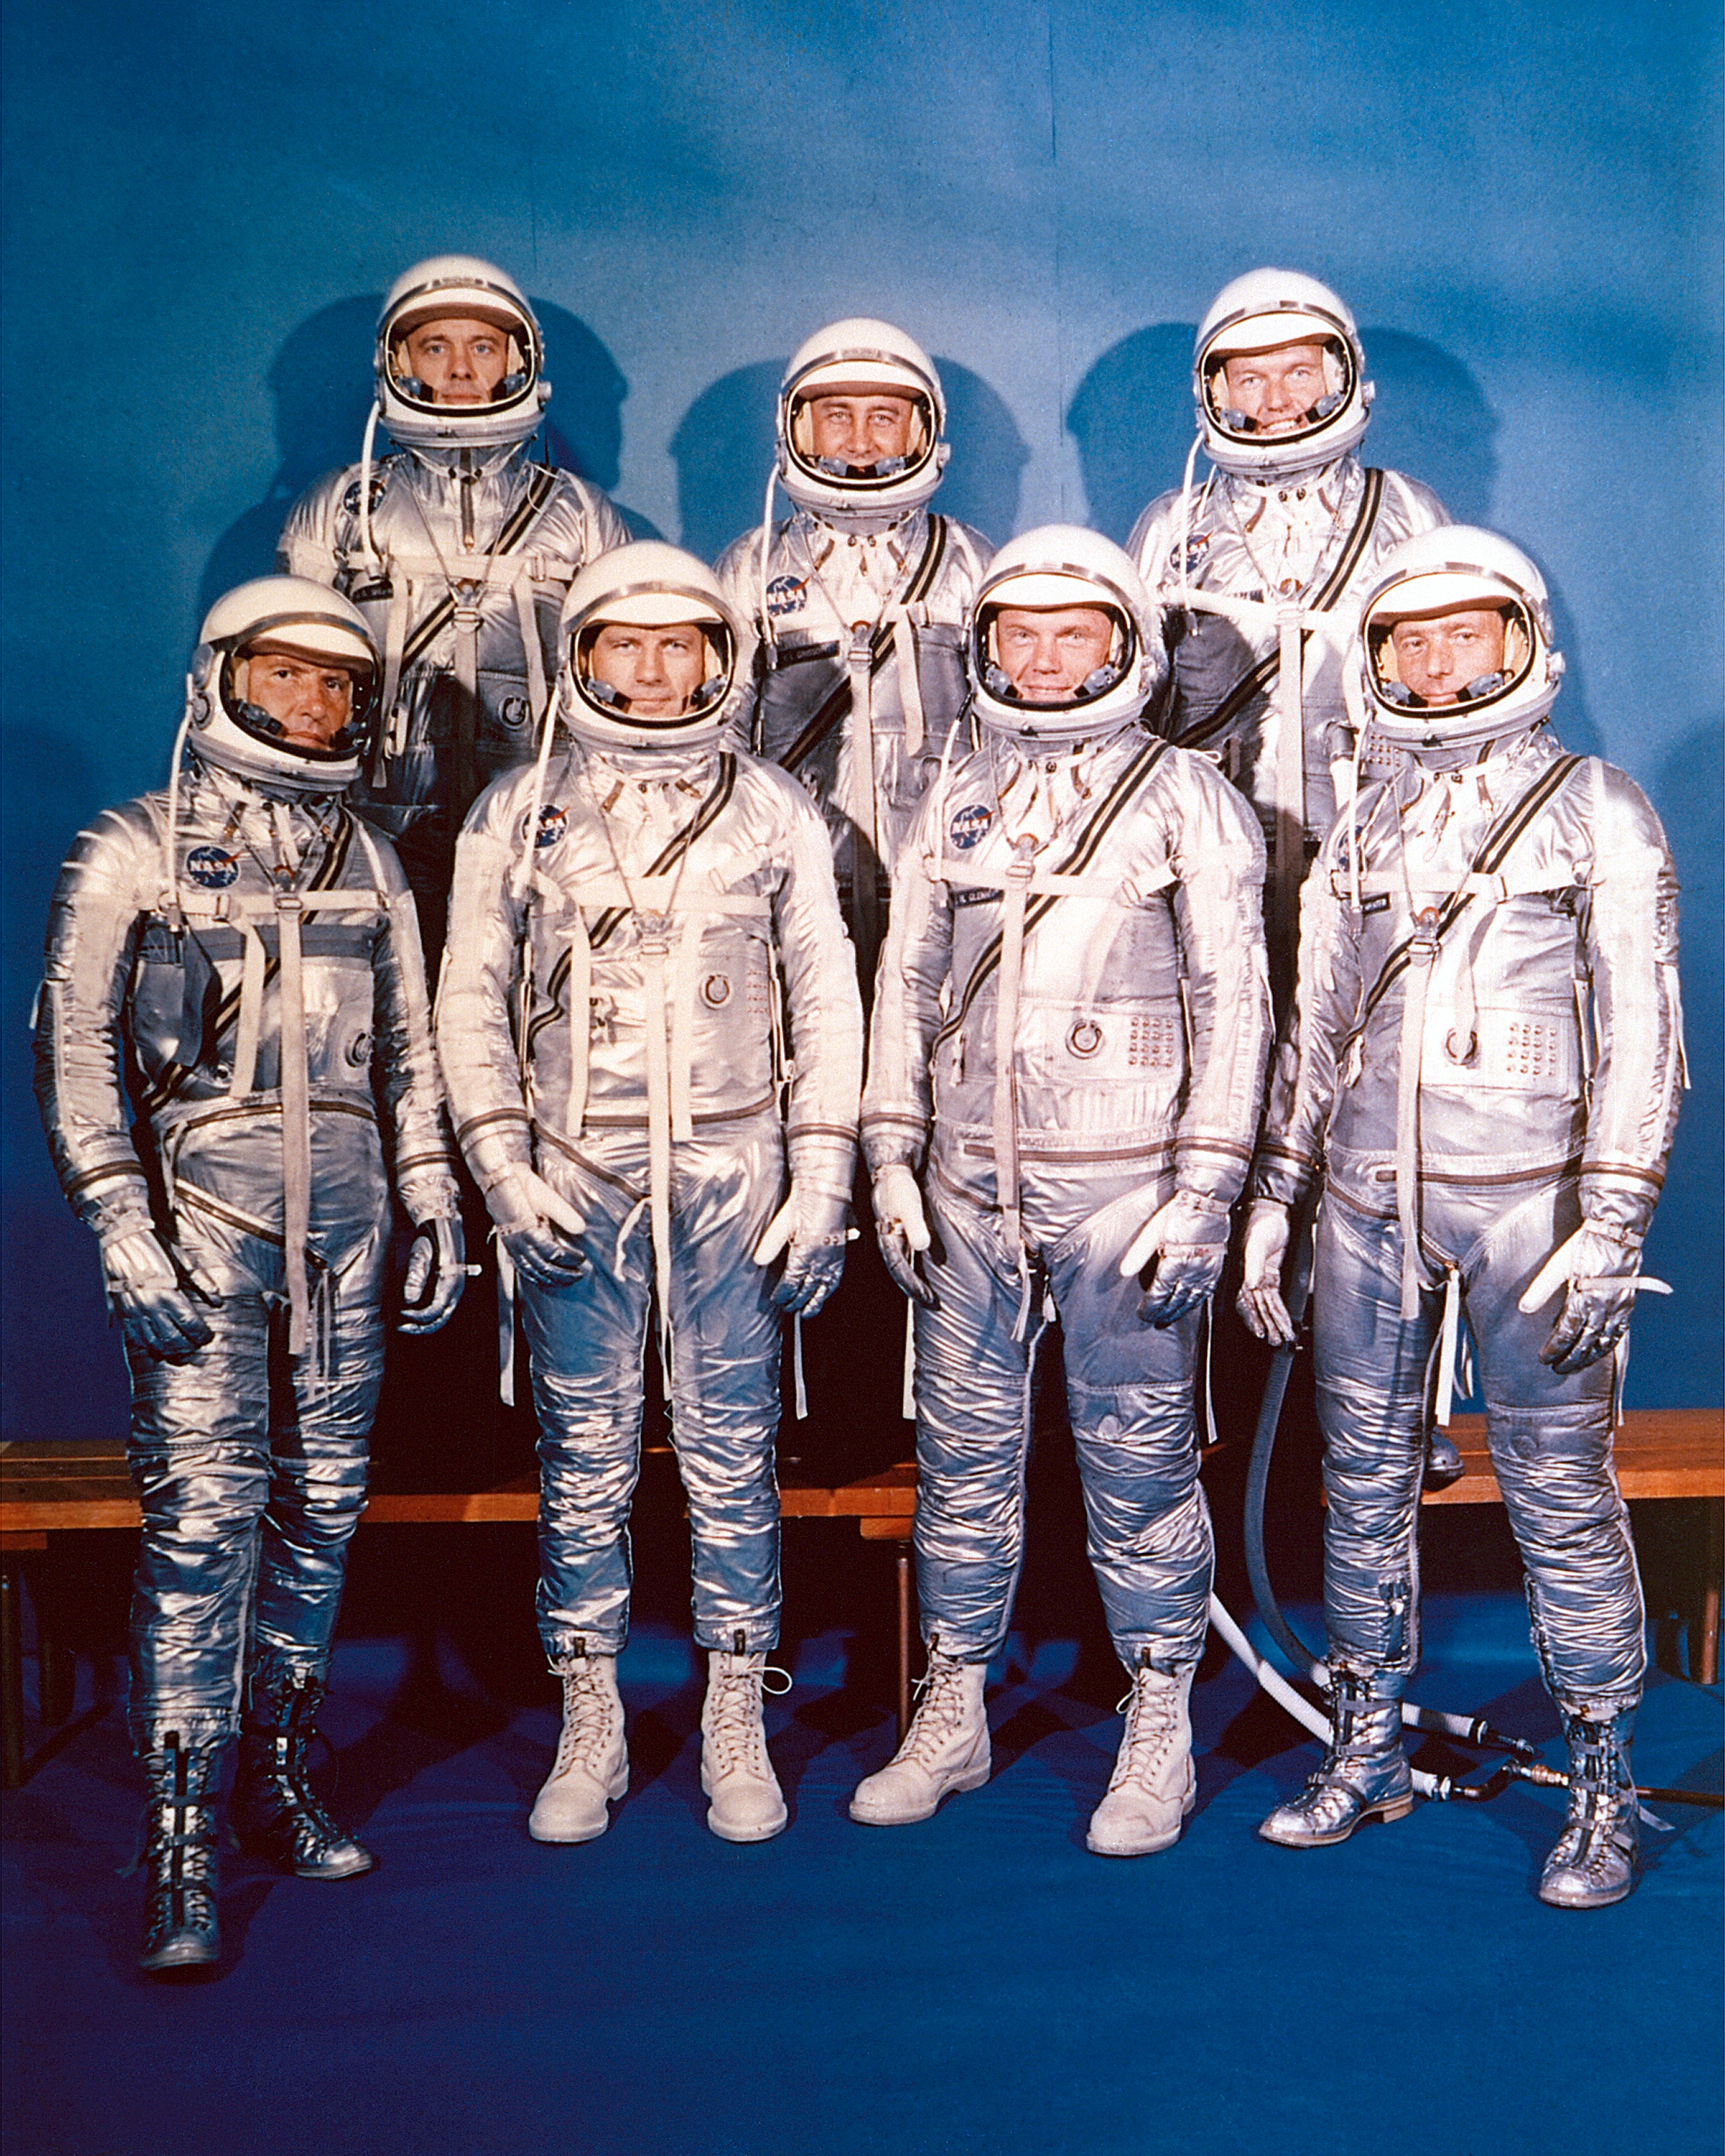 File:Project Mercury Astronauts - GPN-2000-000651.jpg - Wikimedia Commons